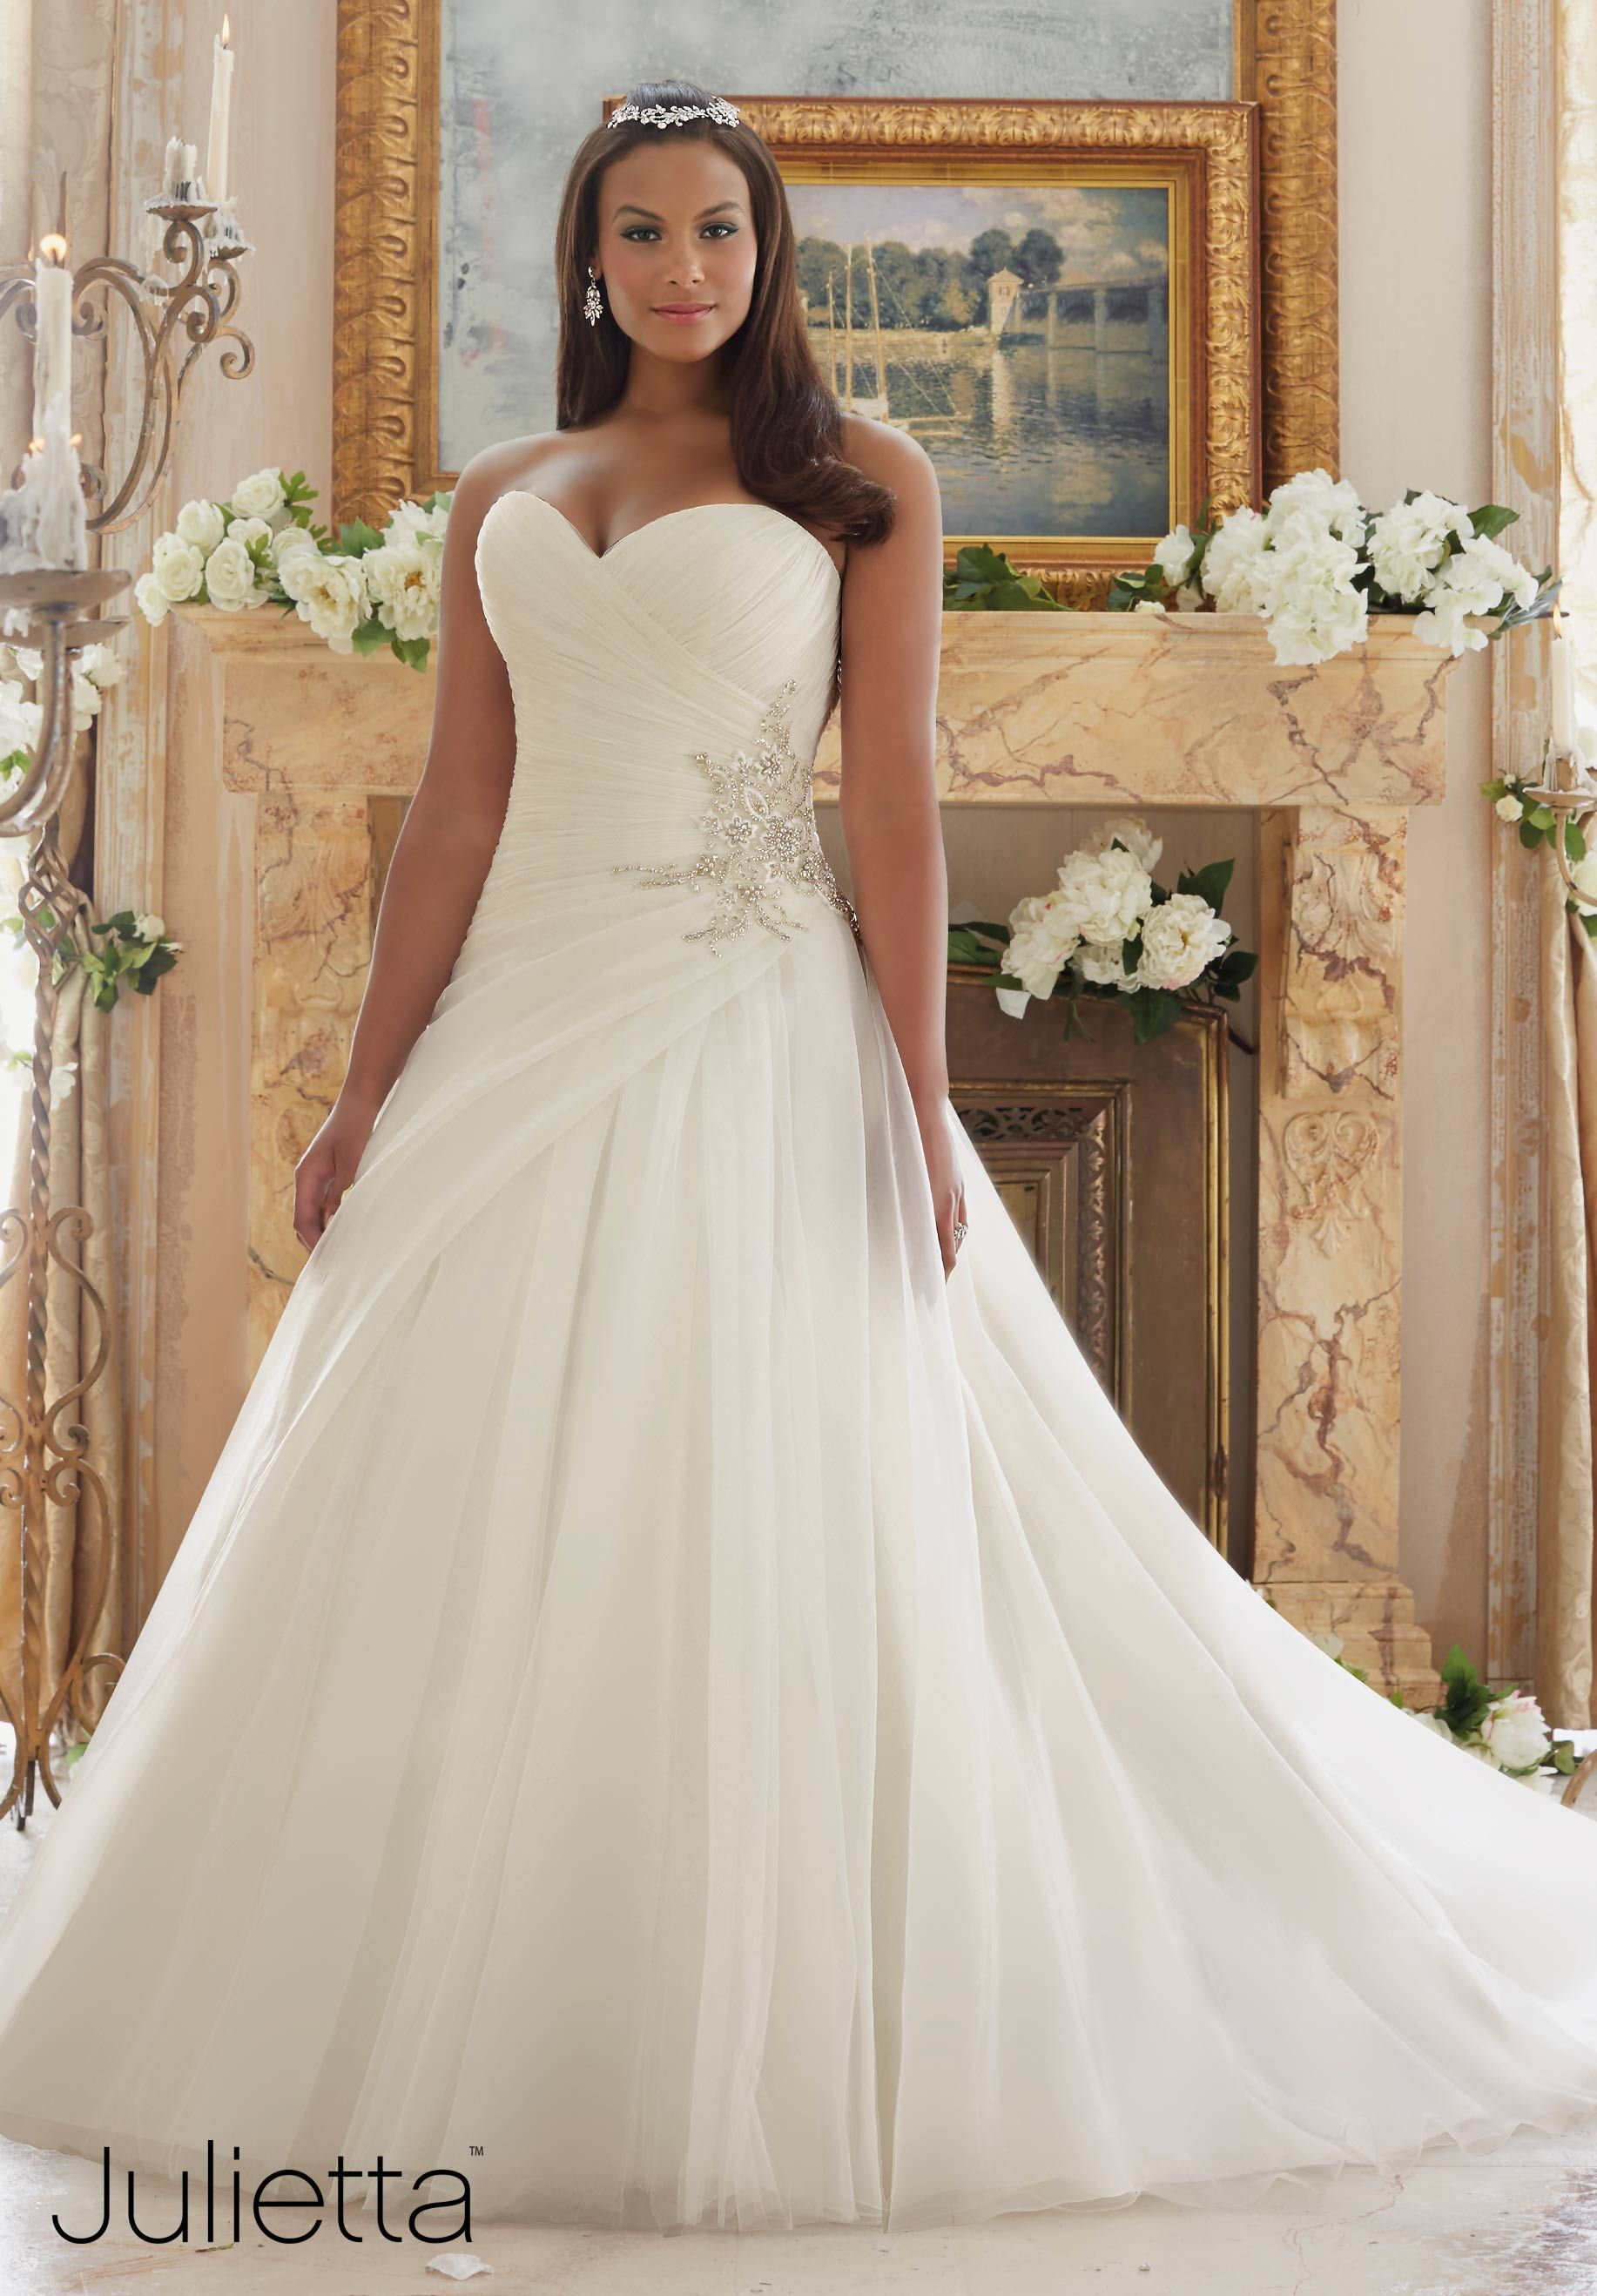 c4edcadd637 Wedding Dresses By Julietta featuring Diamante Beaded Applique on Organza  and Tulle Colors Available  White Silver